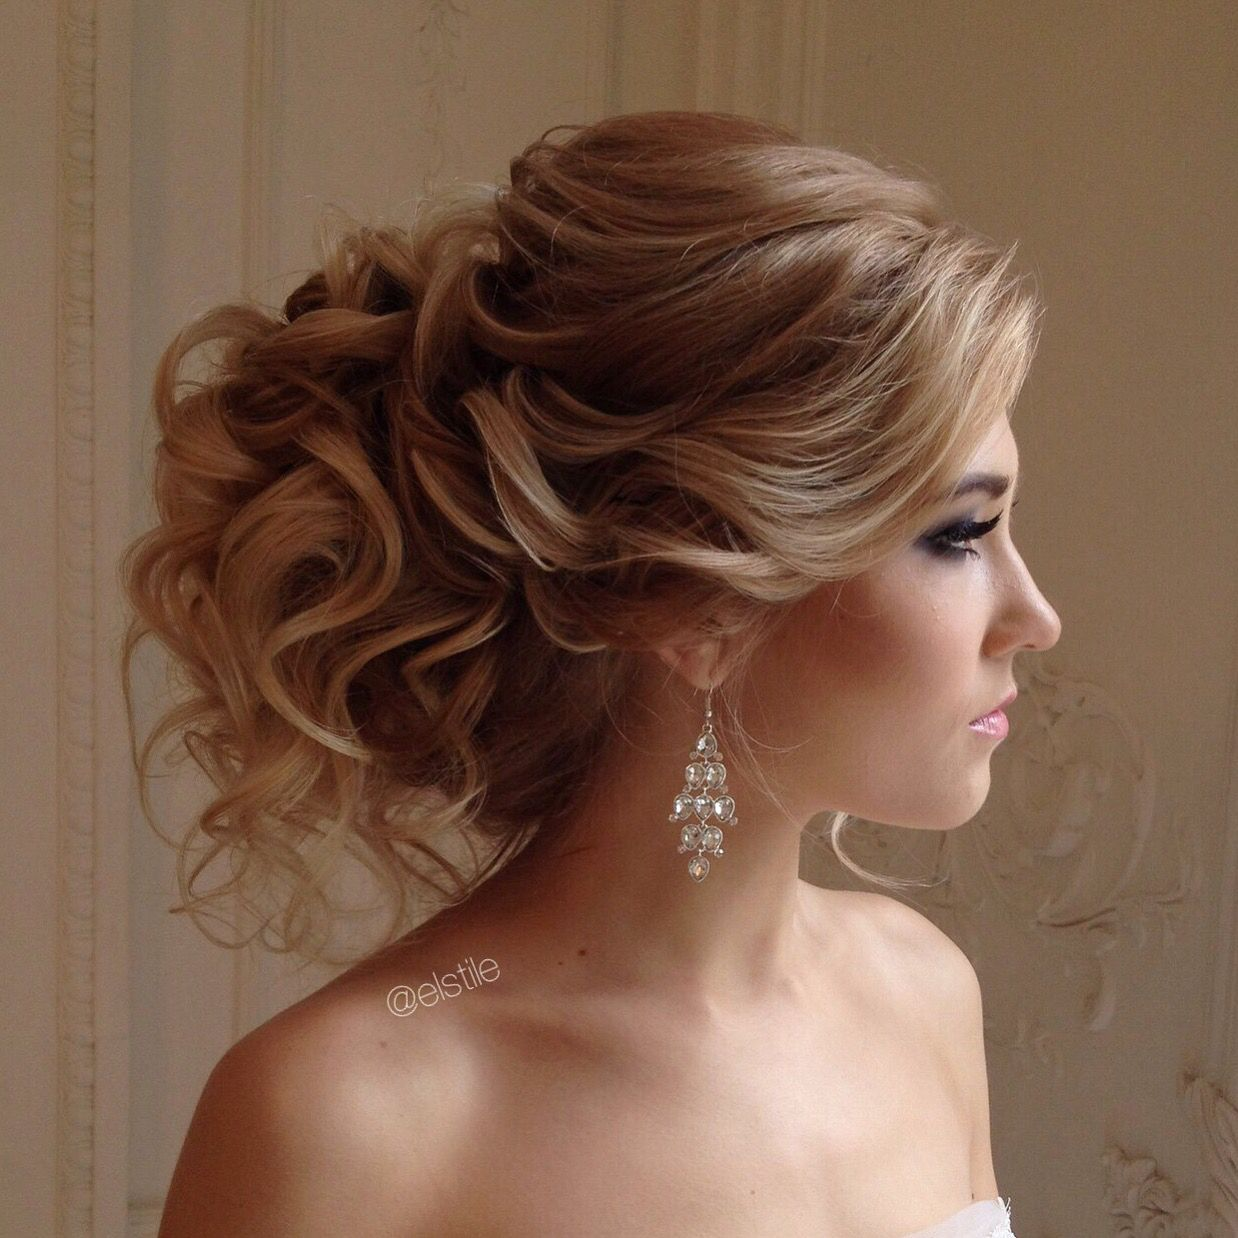 Lovely Bridal Look Make Up, Hairstyles Web: Www.elstile.ru